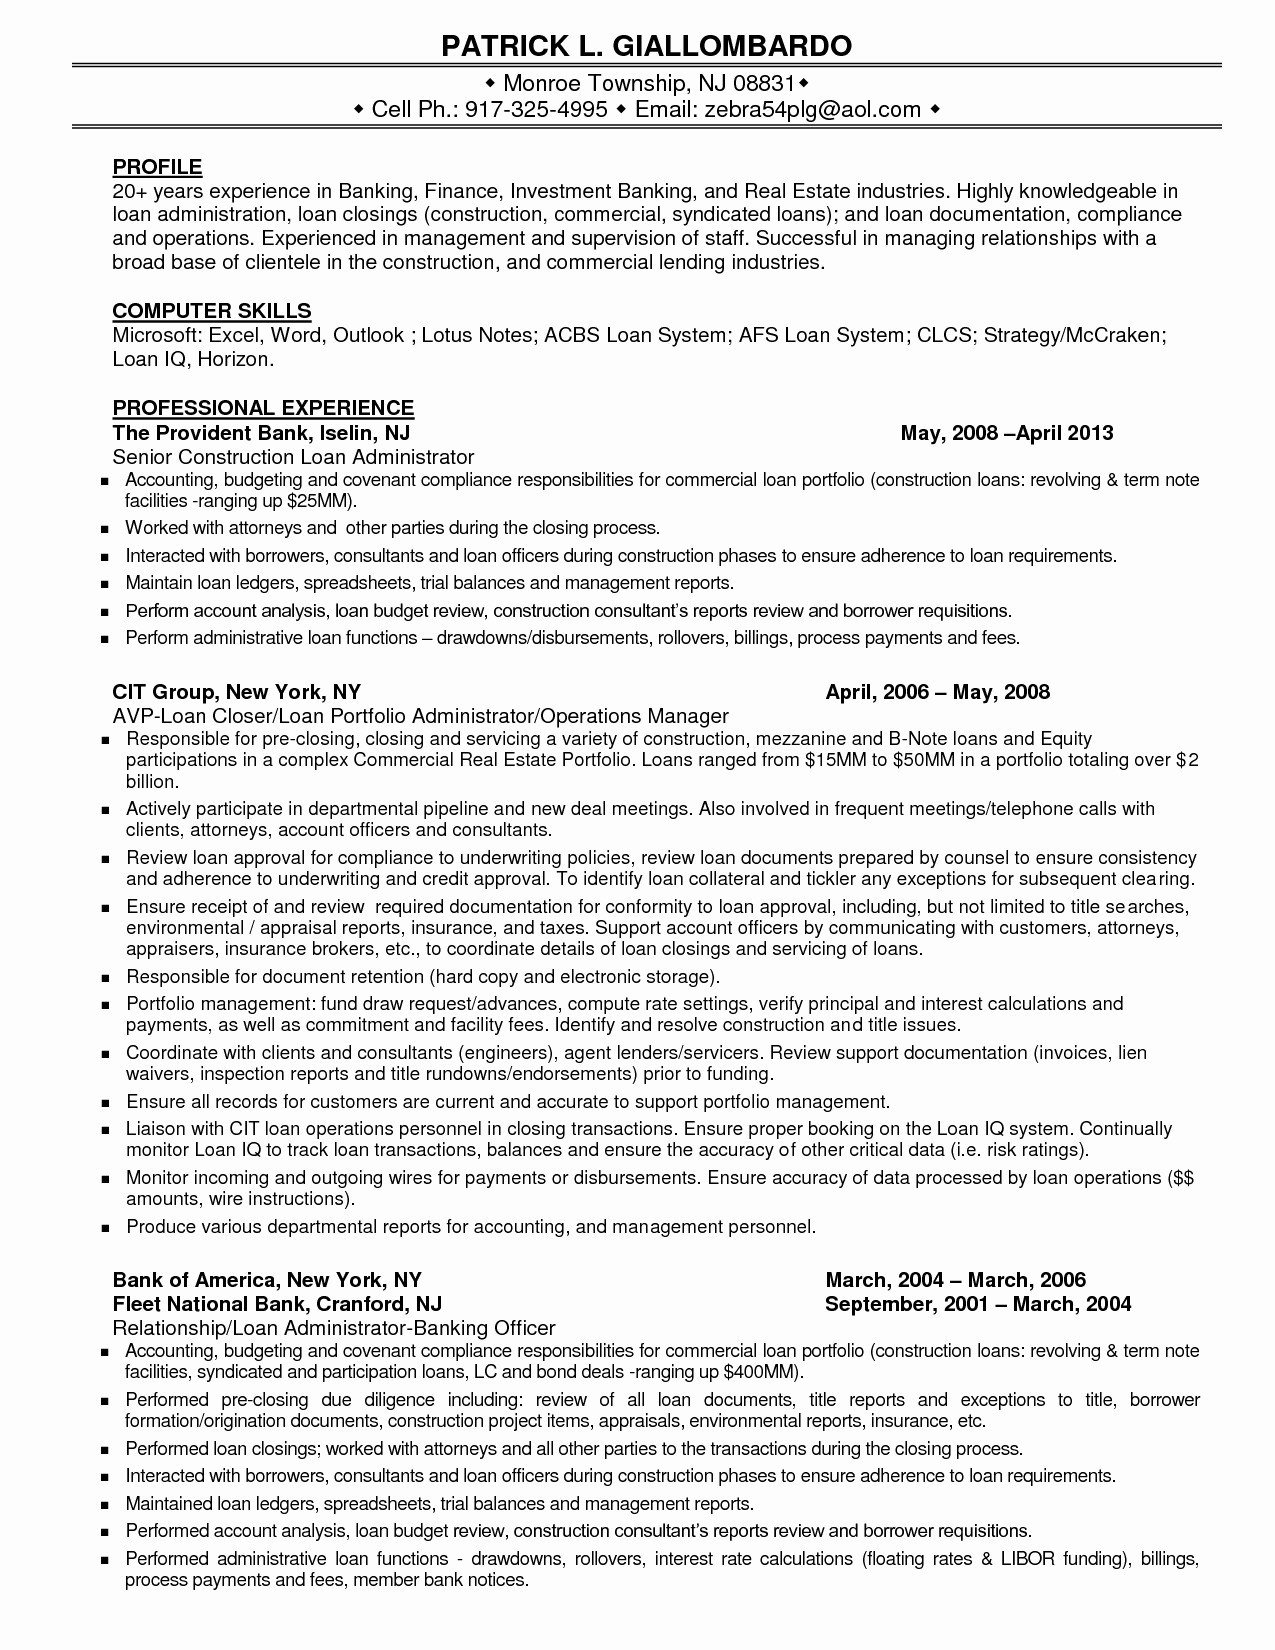 Investment Banking Resume Template - Investment Banking Resume Review which Usually Ten is Utilized